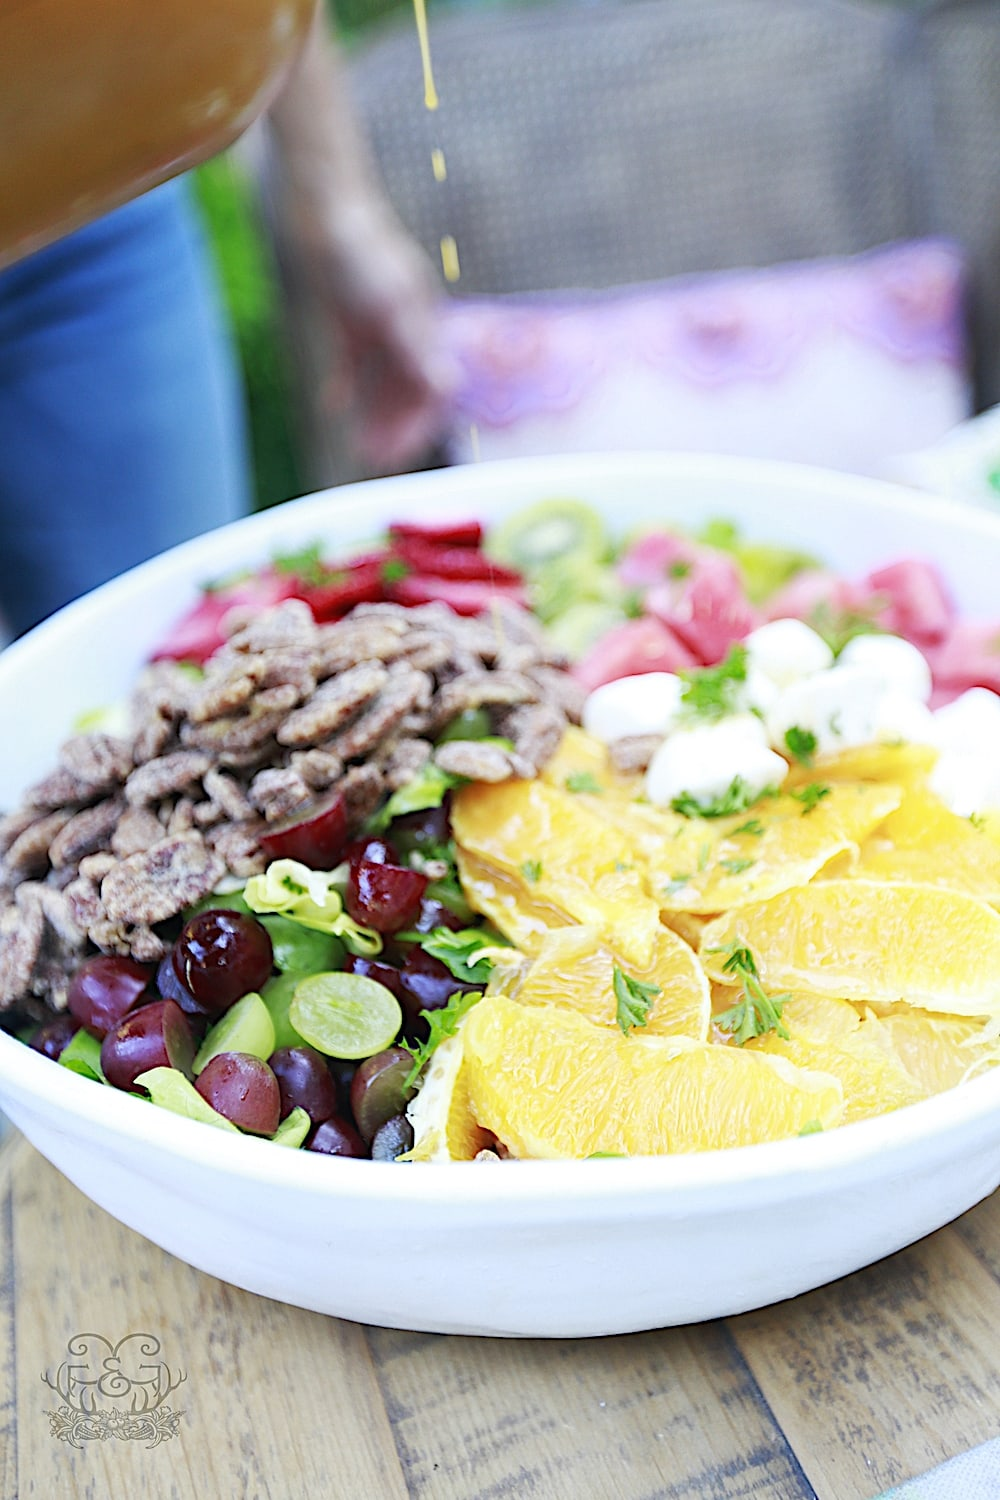 Salad in large white bowl filled with lettuce, pecans, orange slices, strawberries, grapes, strawberries, mozzarella on a table